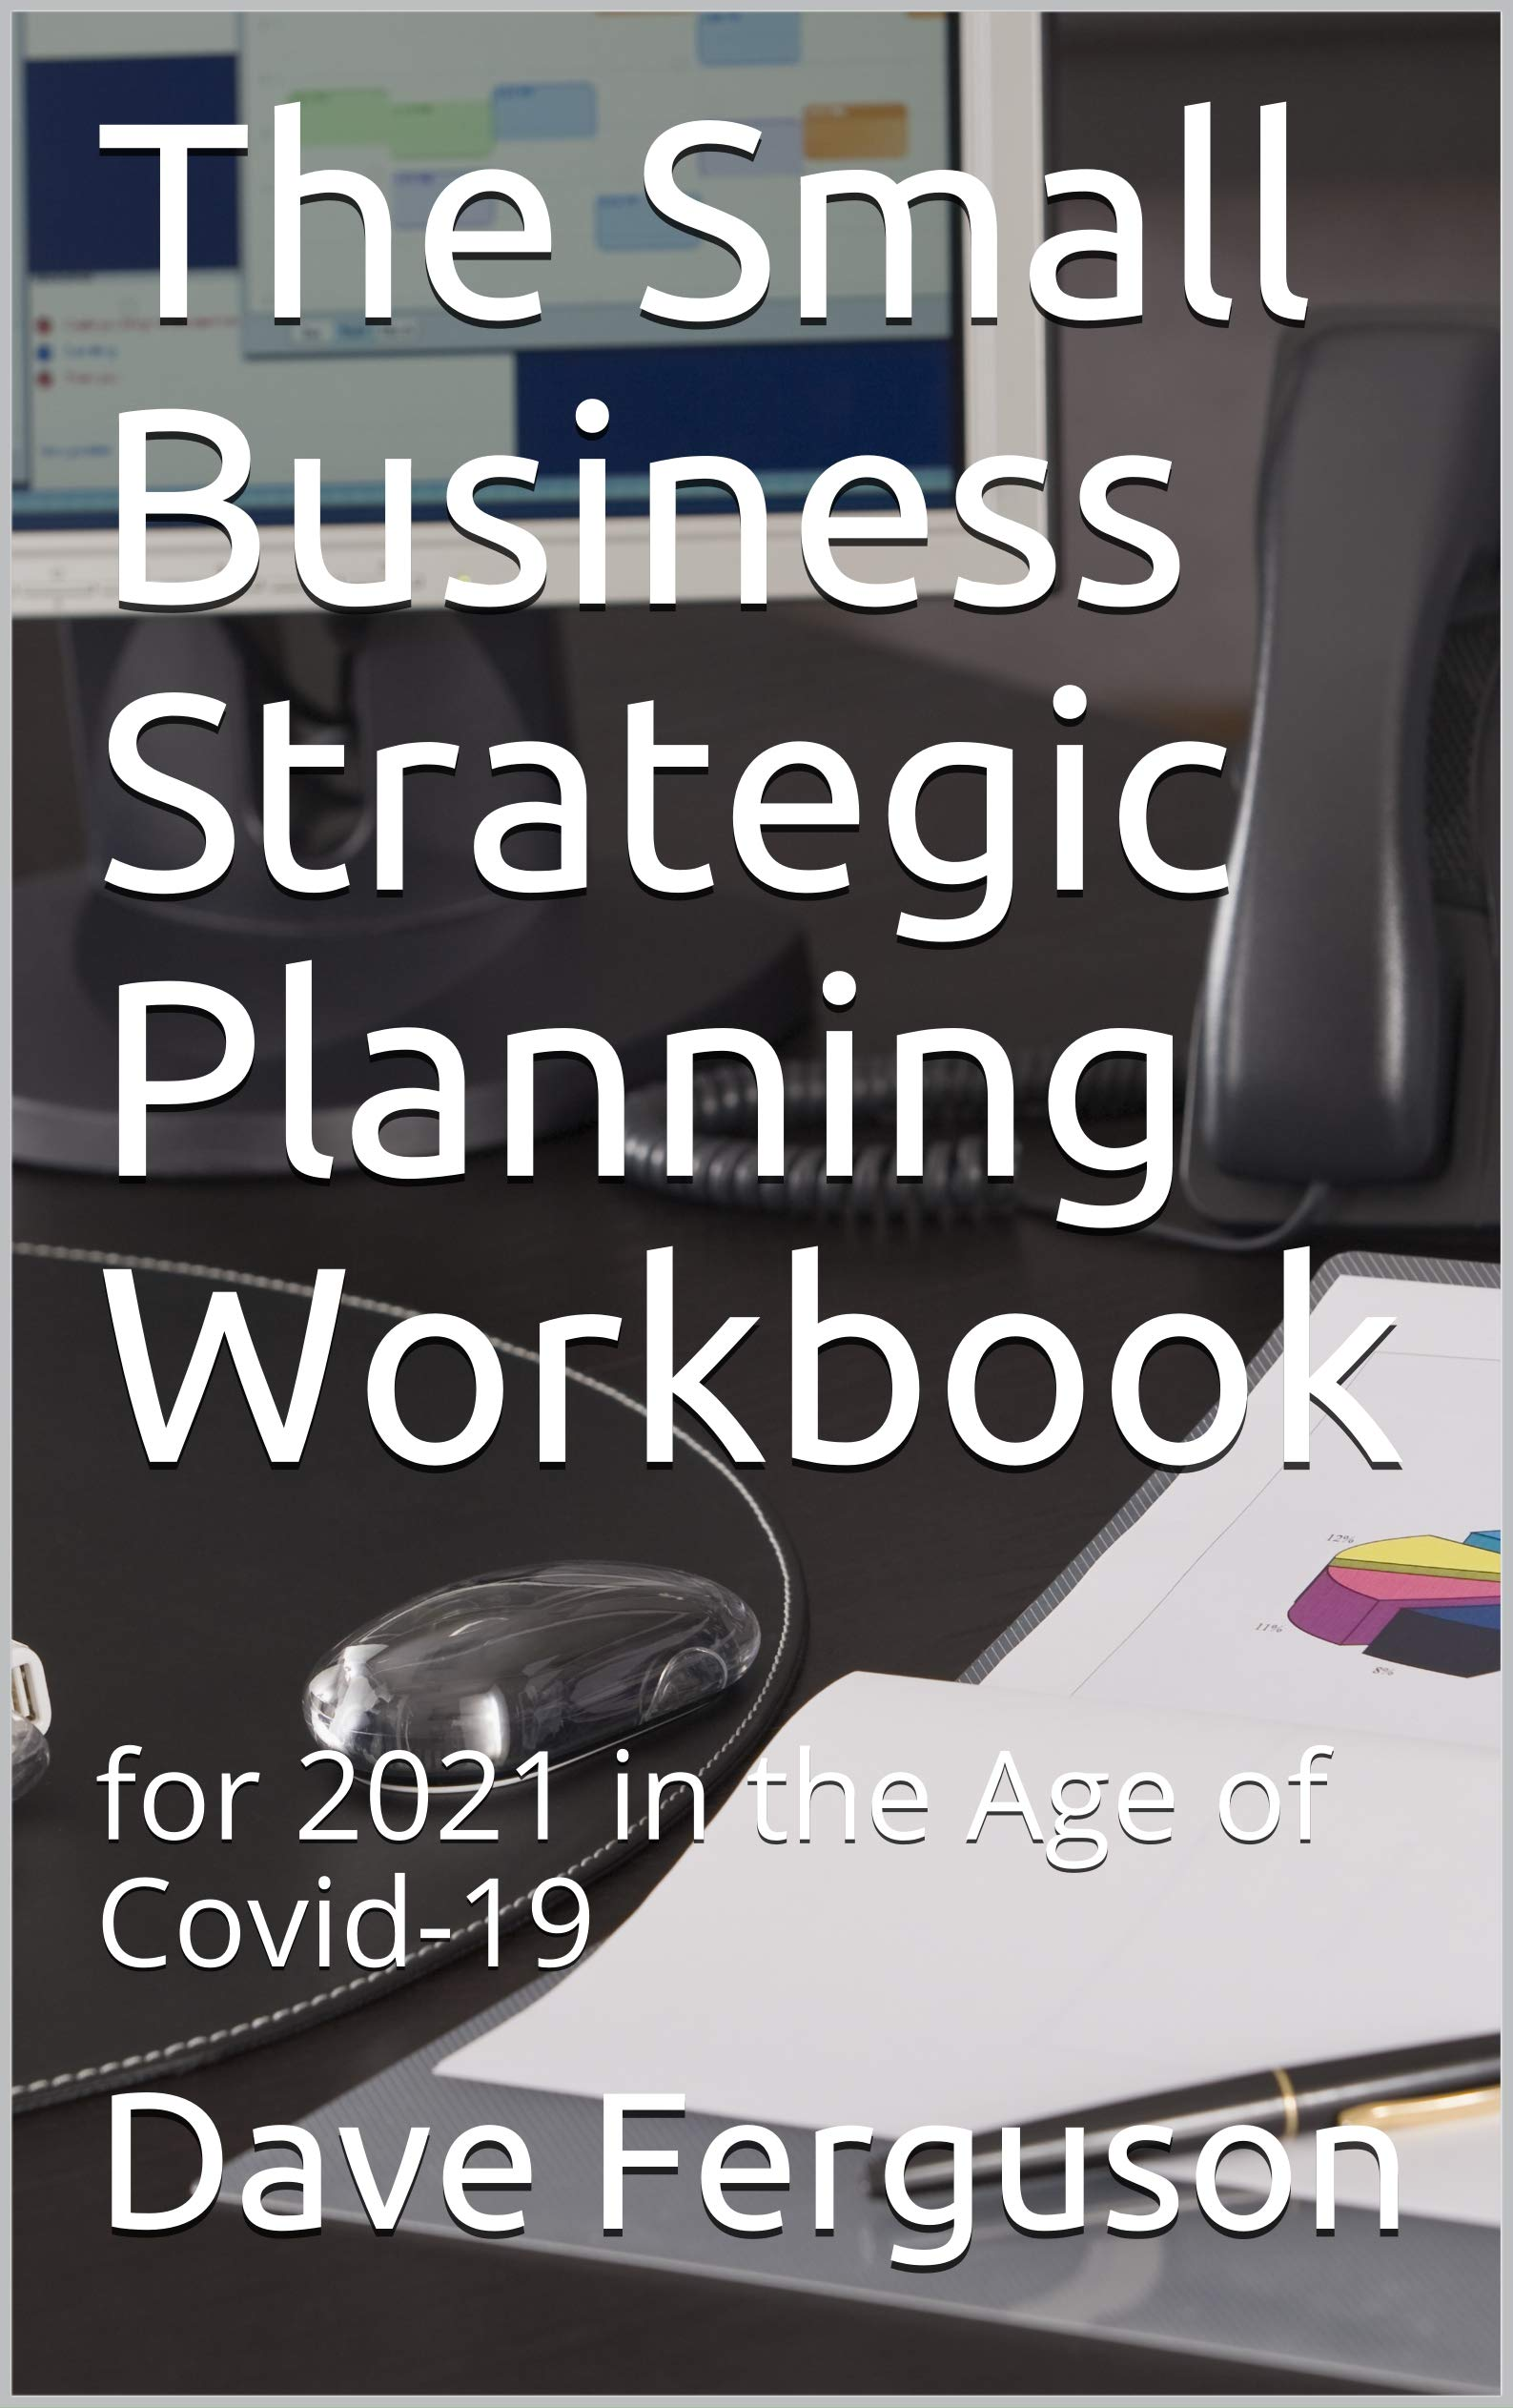 The Small Business Strategic Planning Workbook: for 2021 in the Age of Covid-19